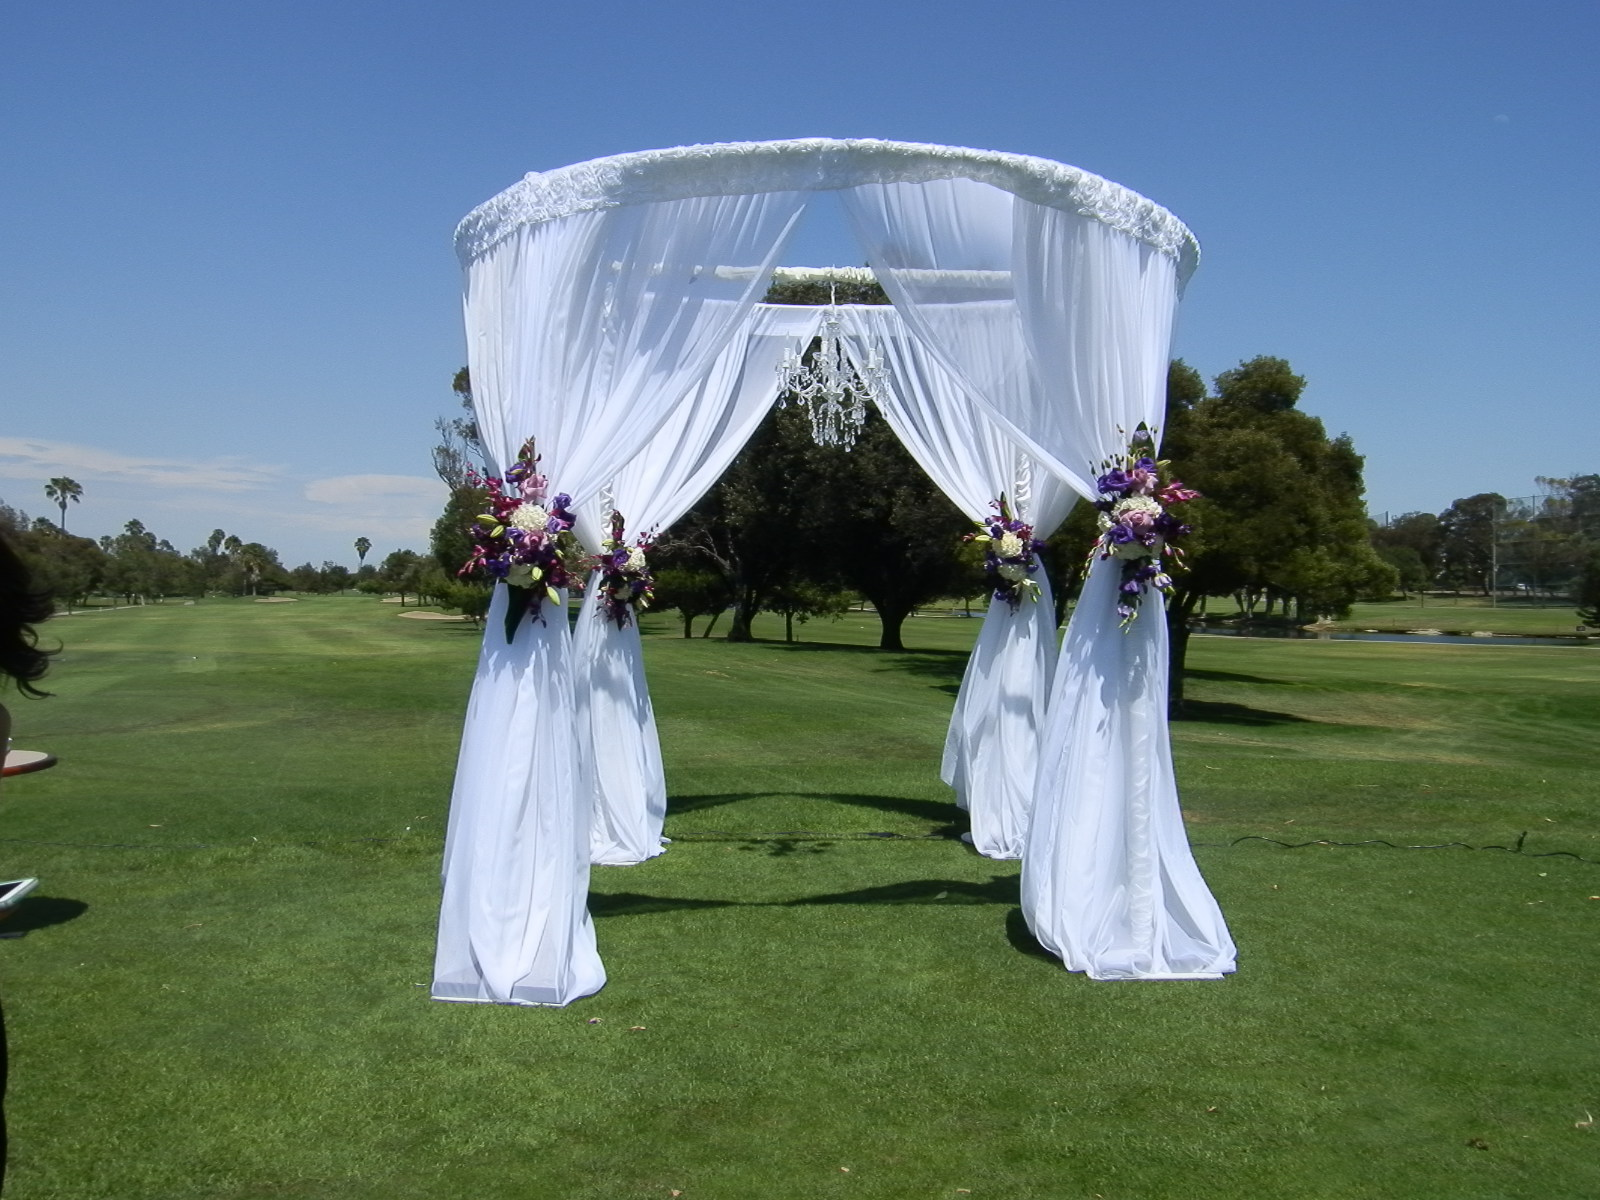 wedding design gallery wedding canopy Round Canopy with Chandelier and Flowers SBD Event Designs SBD Events Outside weddings